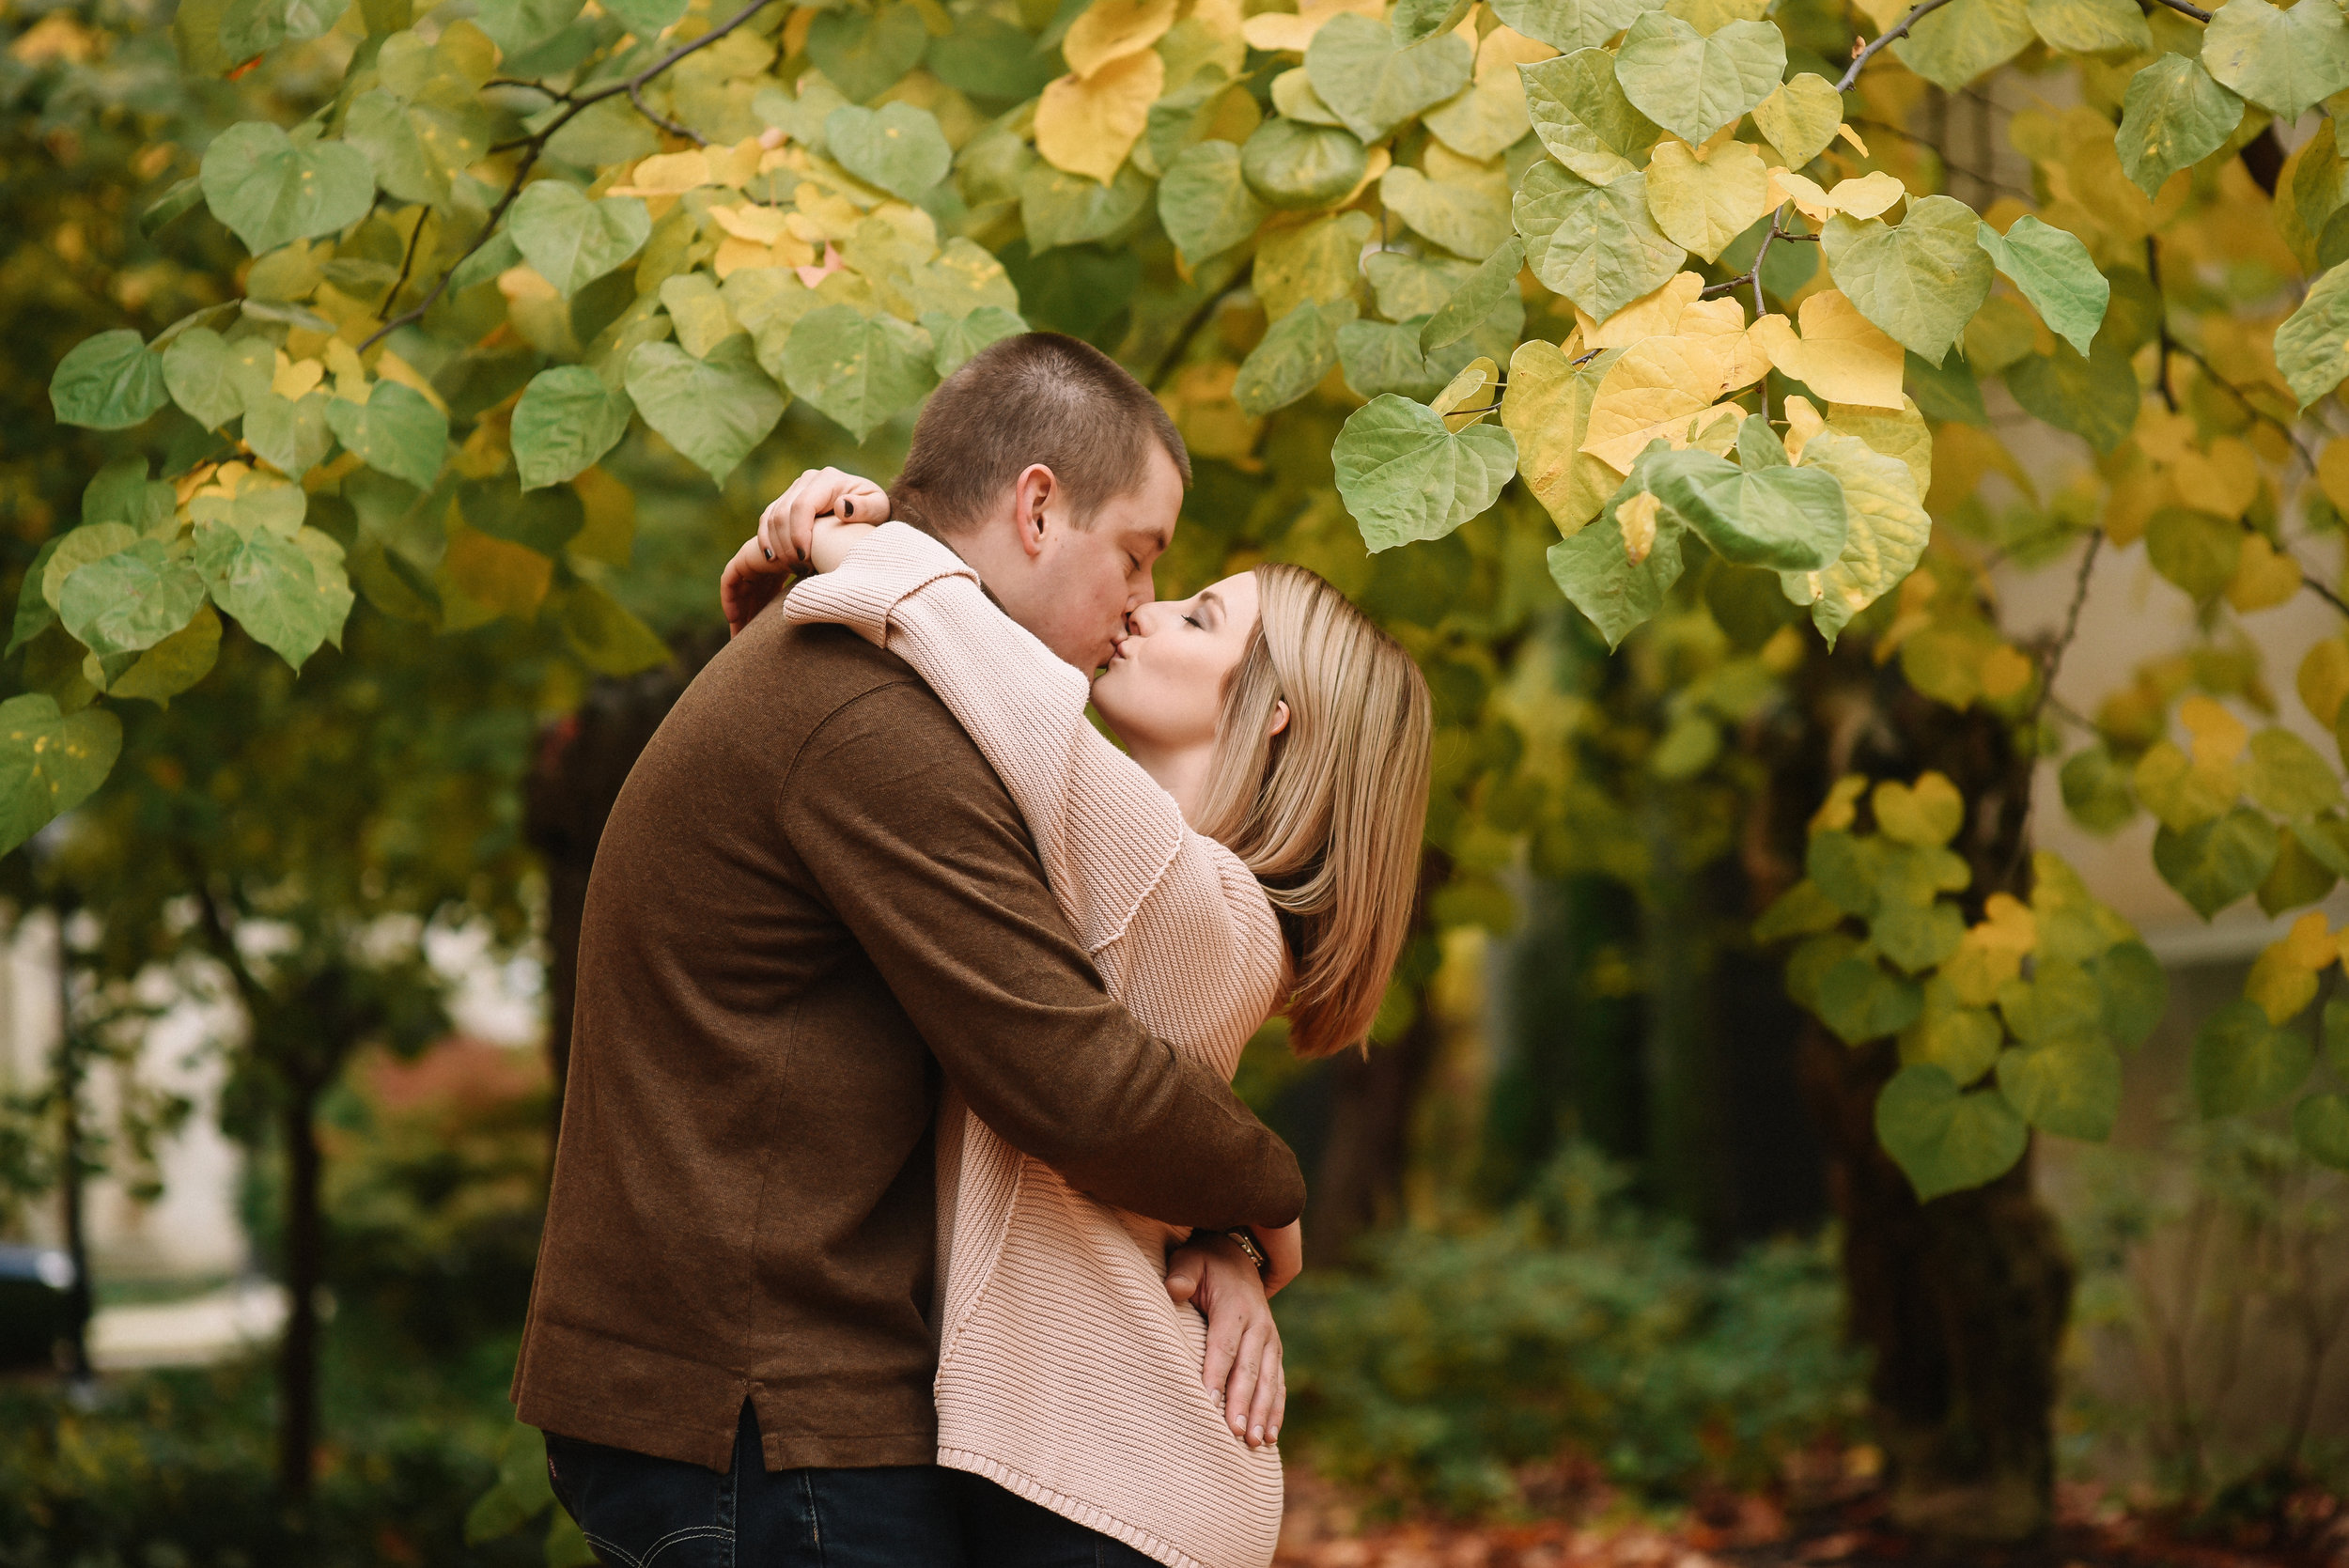 Law_Quad_Ann_Arbor_Engagement_Photos-15.jpg